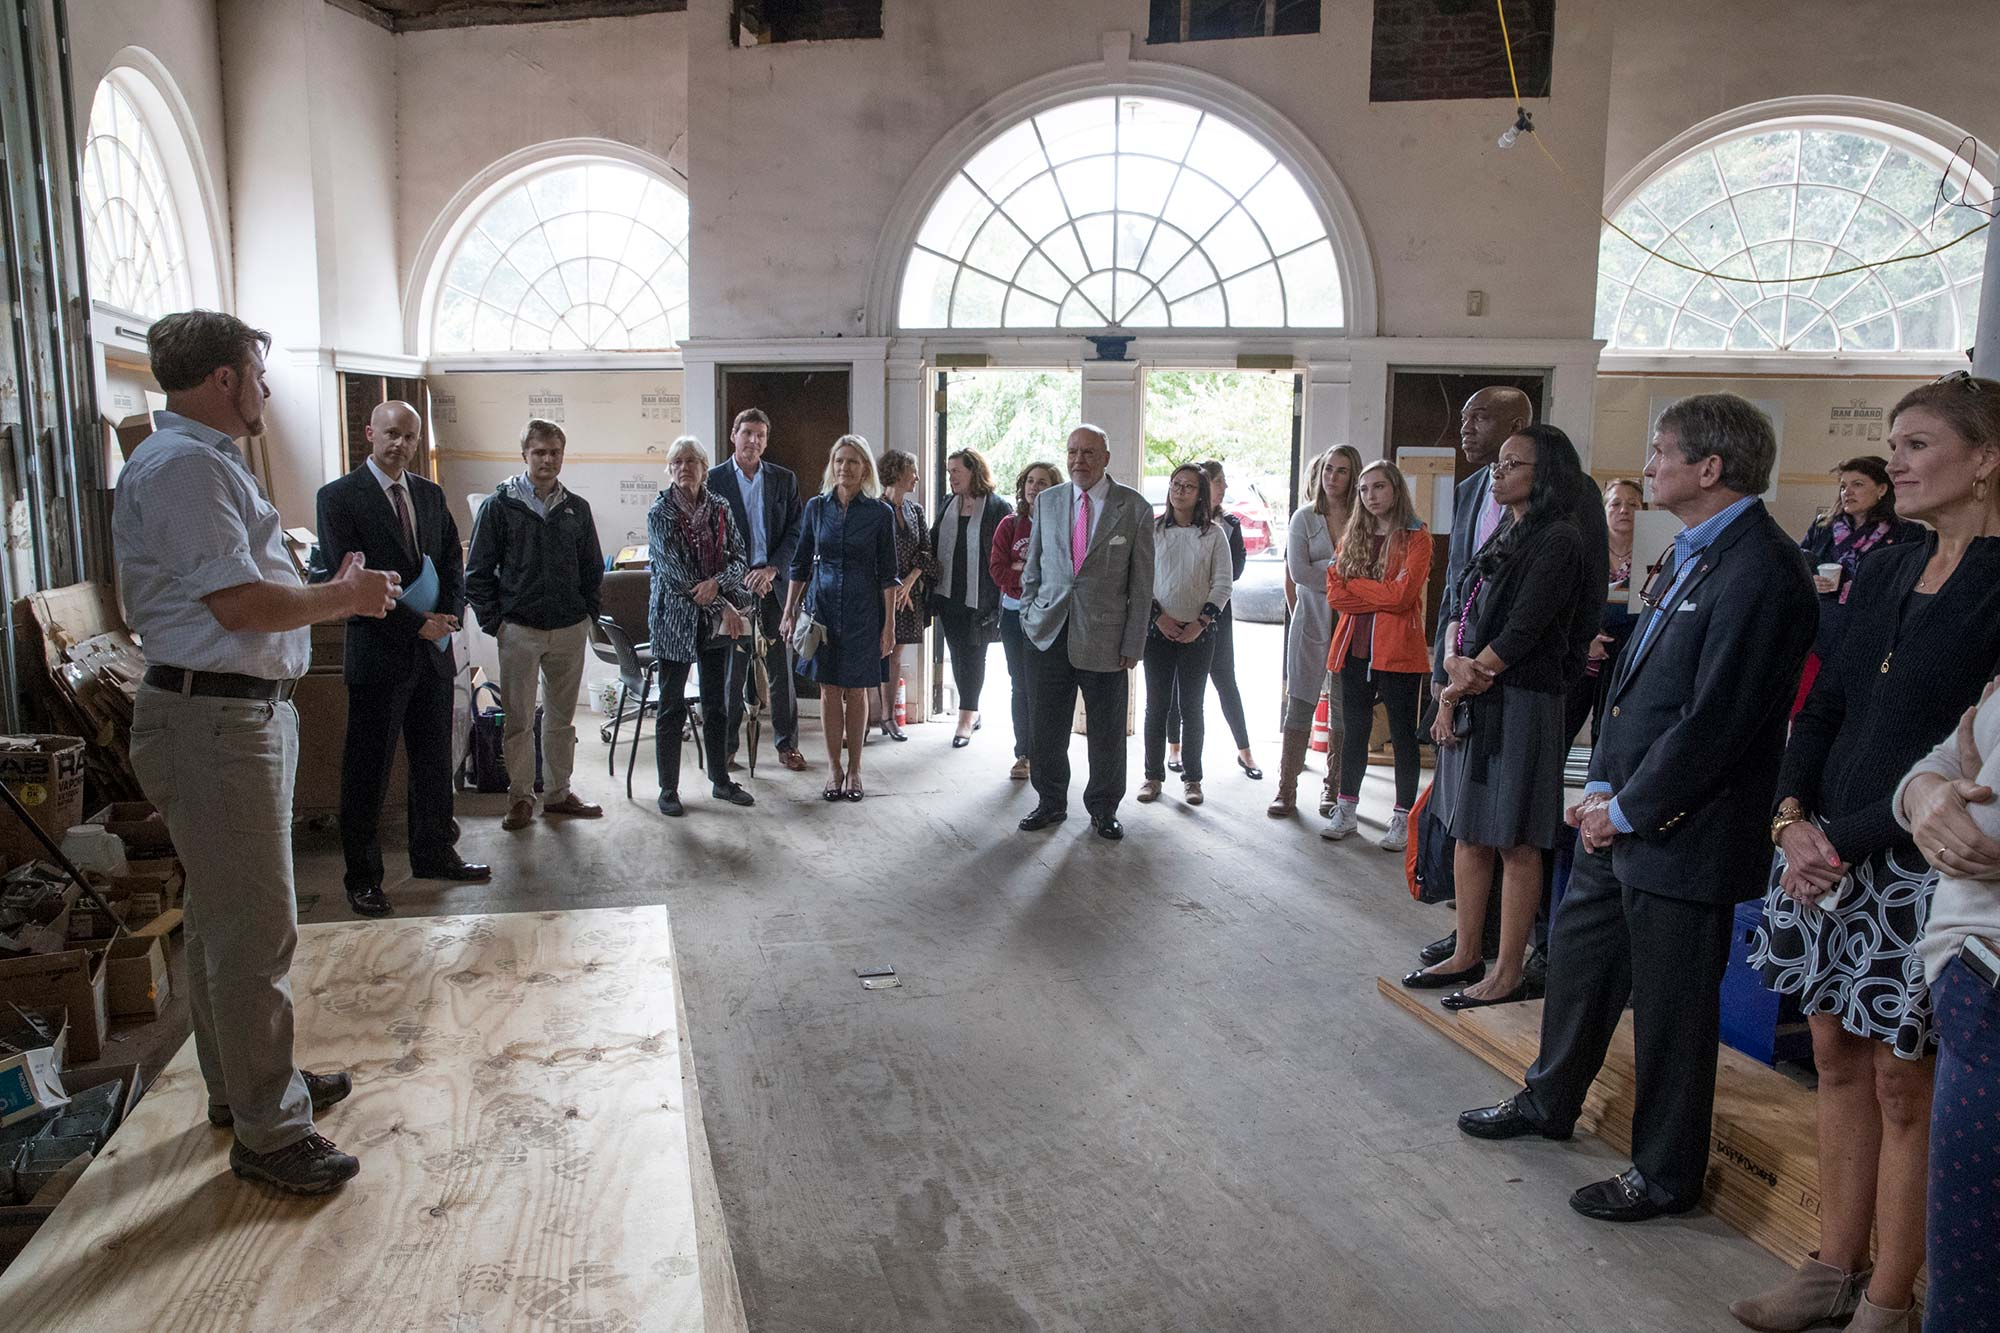 James Zehmer, UVA's historic preservation project manager, speaks with members of the UVA Parents Fund Committee during a tour of 1515 last October. The committee has donated funds toward a variety of games in the Basement of 1515.